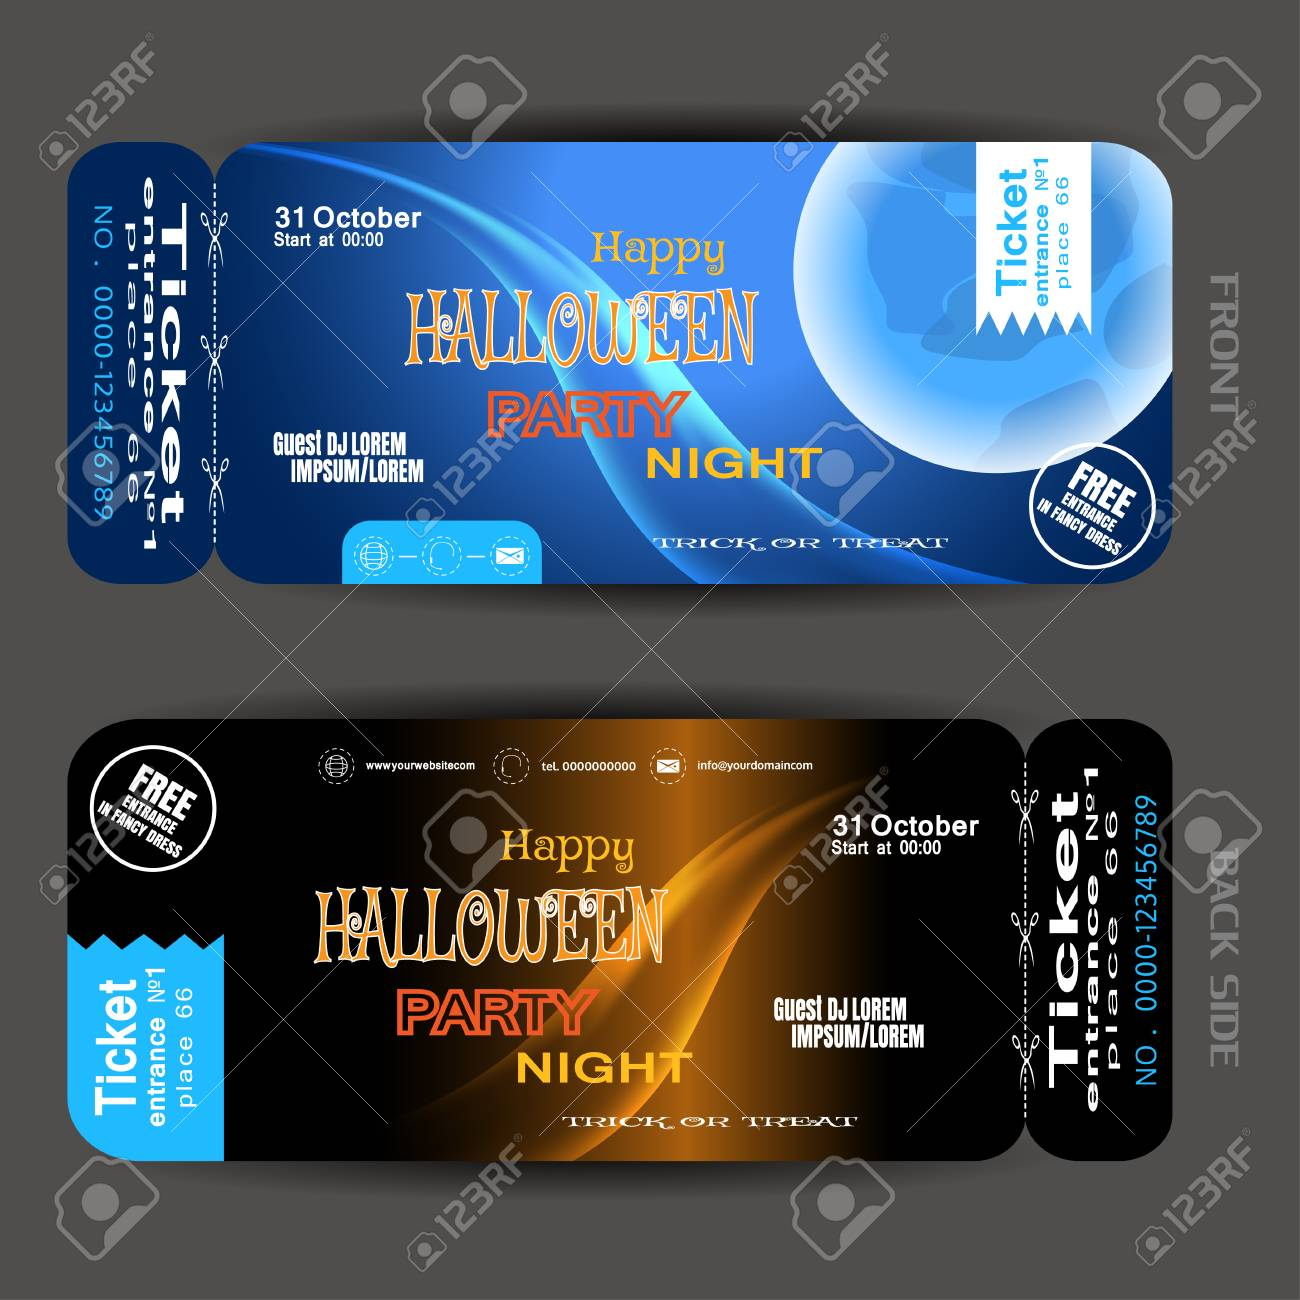 Happy Halloween Night Party With Blue Full Moon. Stock Vector   87923680